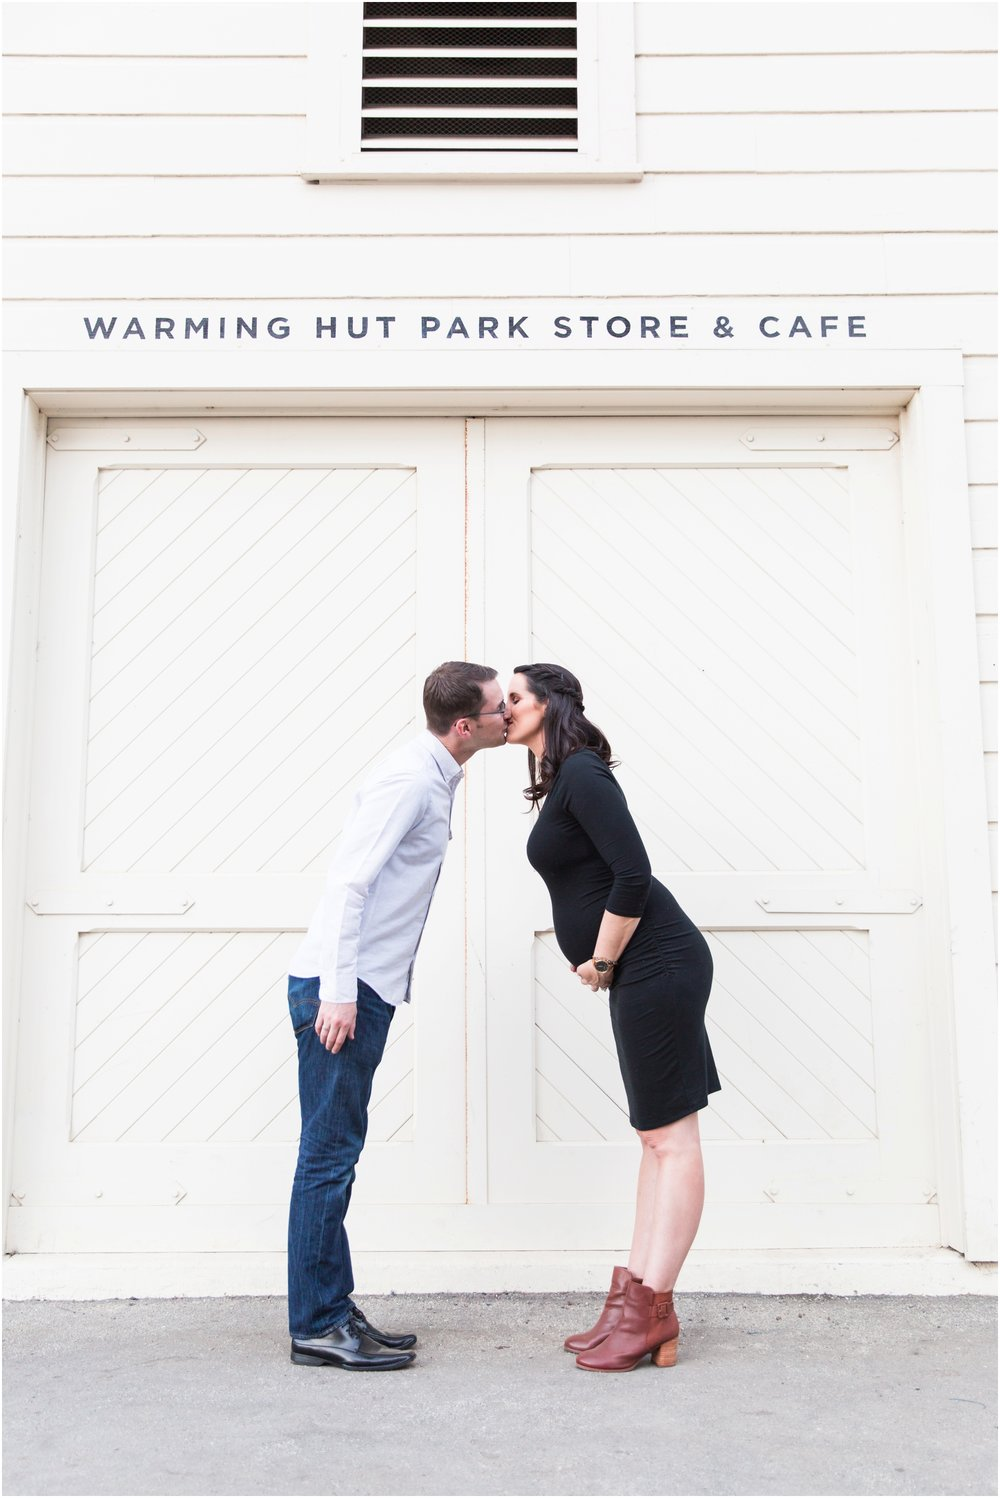 Crissy Field San Francisco maternity pictures by Briana Calderon Photography_0275.jpg